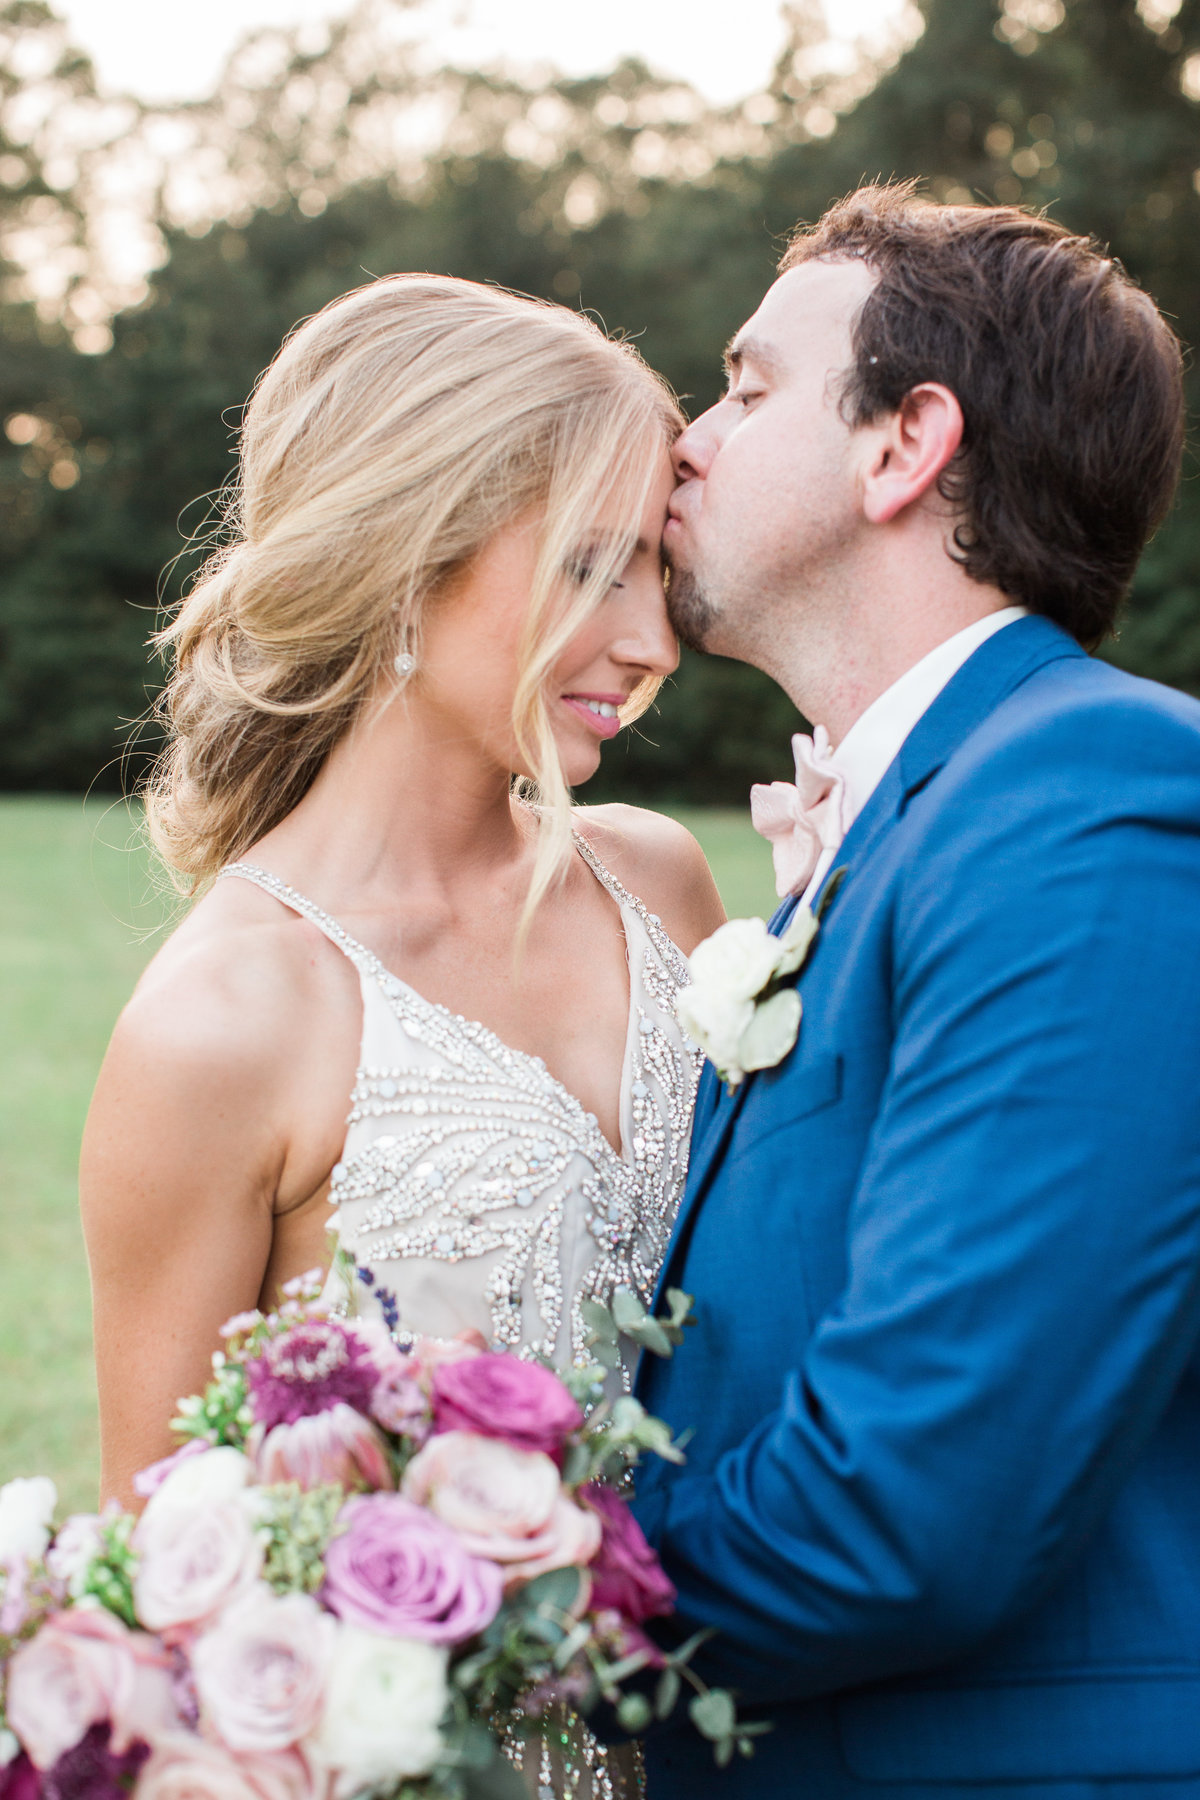 Eden & Will Wedding_Lindsay Ott Photography_Mississippi Wedding Photographer111